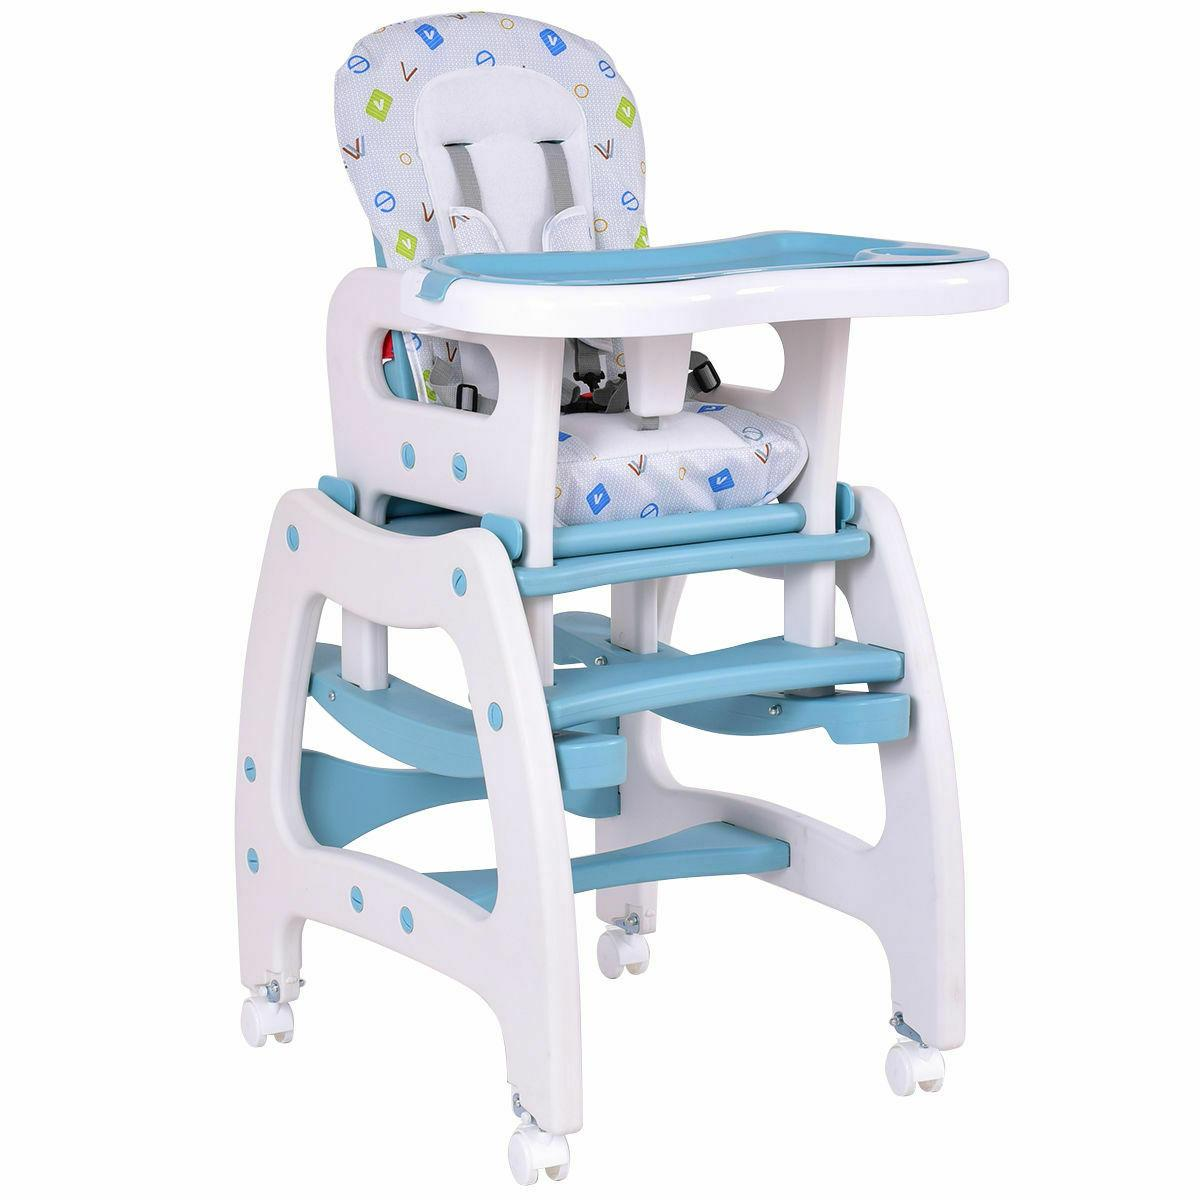 High 1 Baby Table Seat Booster Pink/Blue